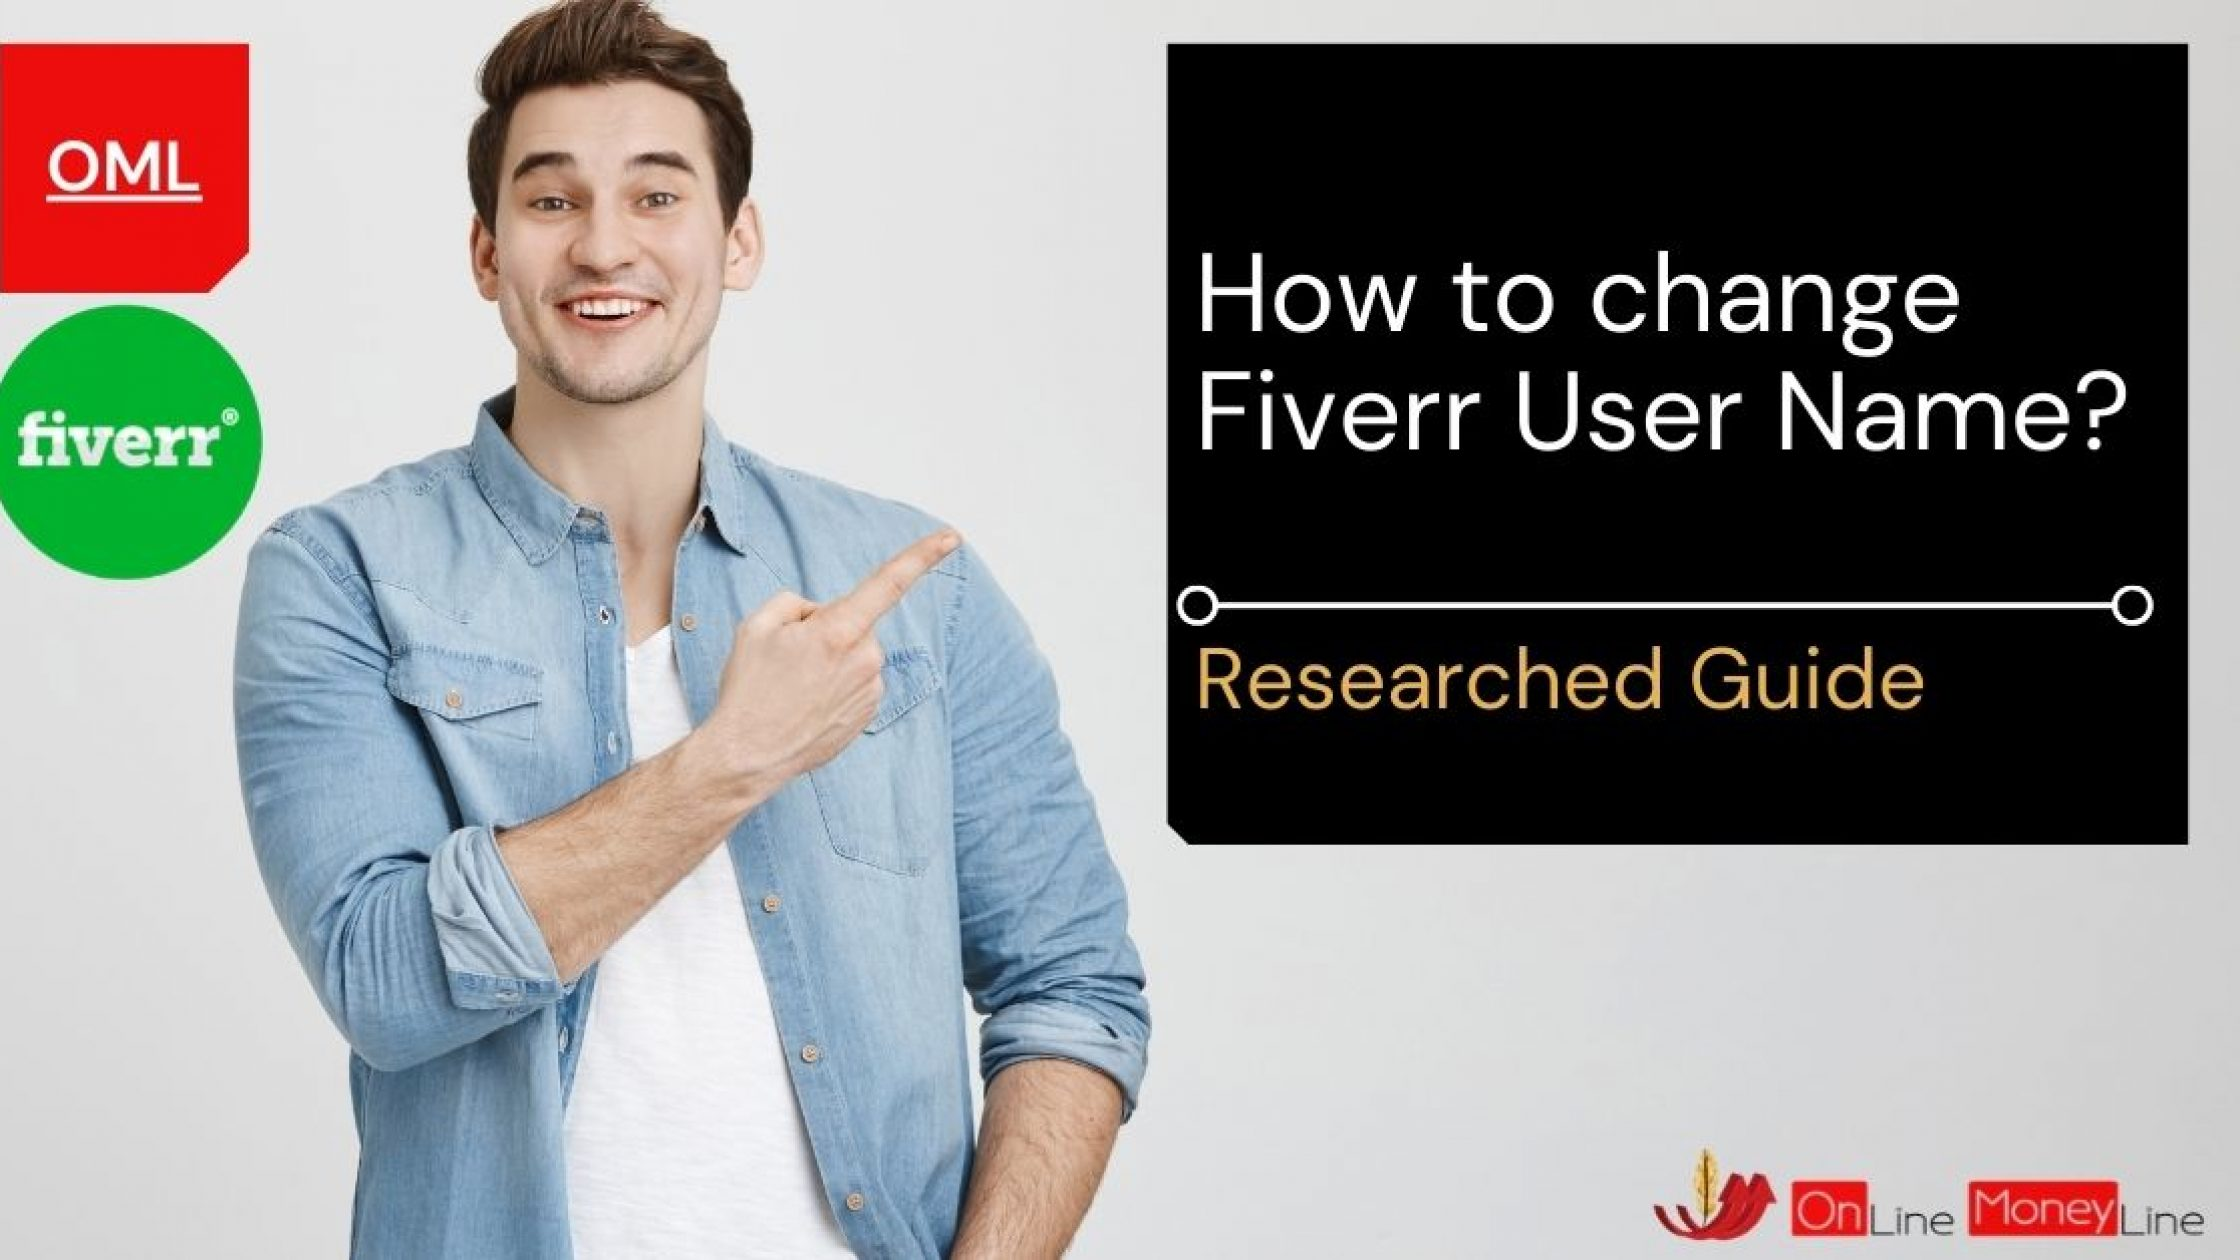 【FAST】How to Change Fiverr Username 2 Minutes